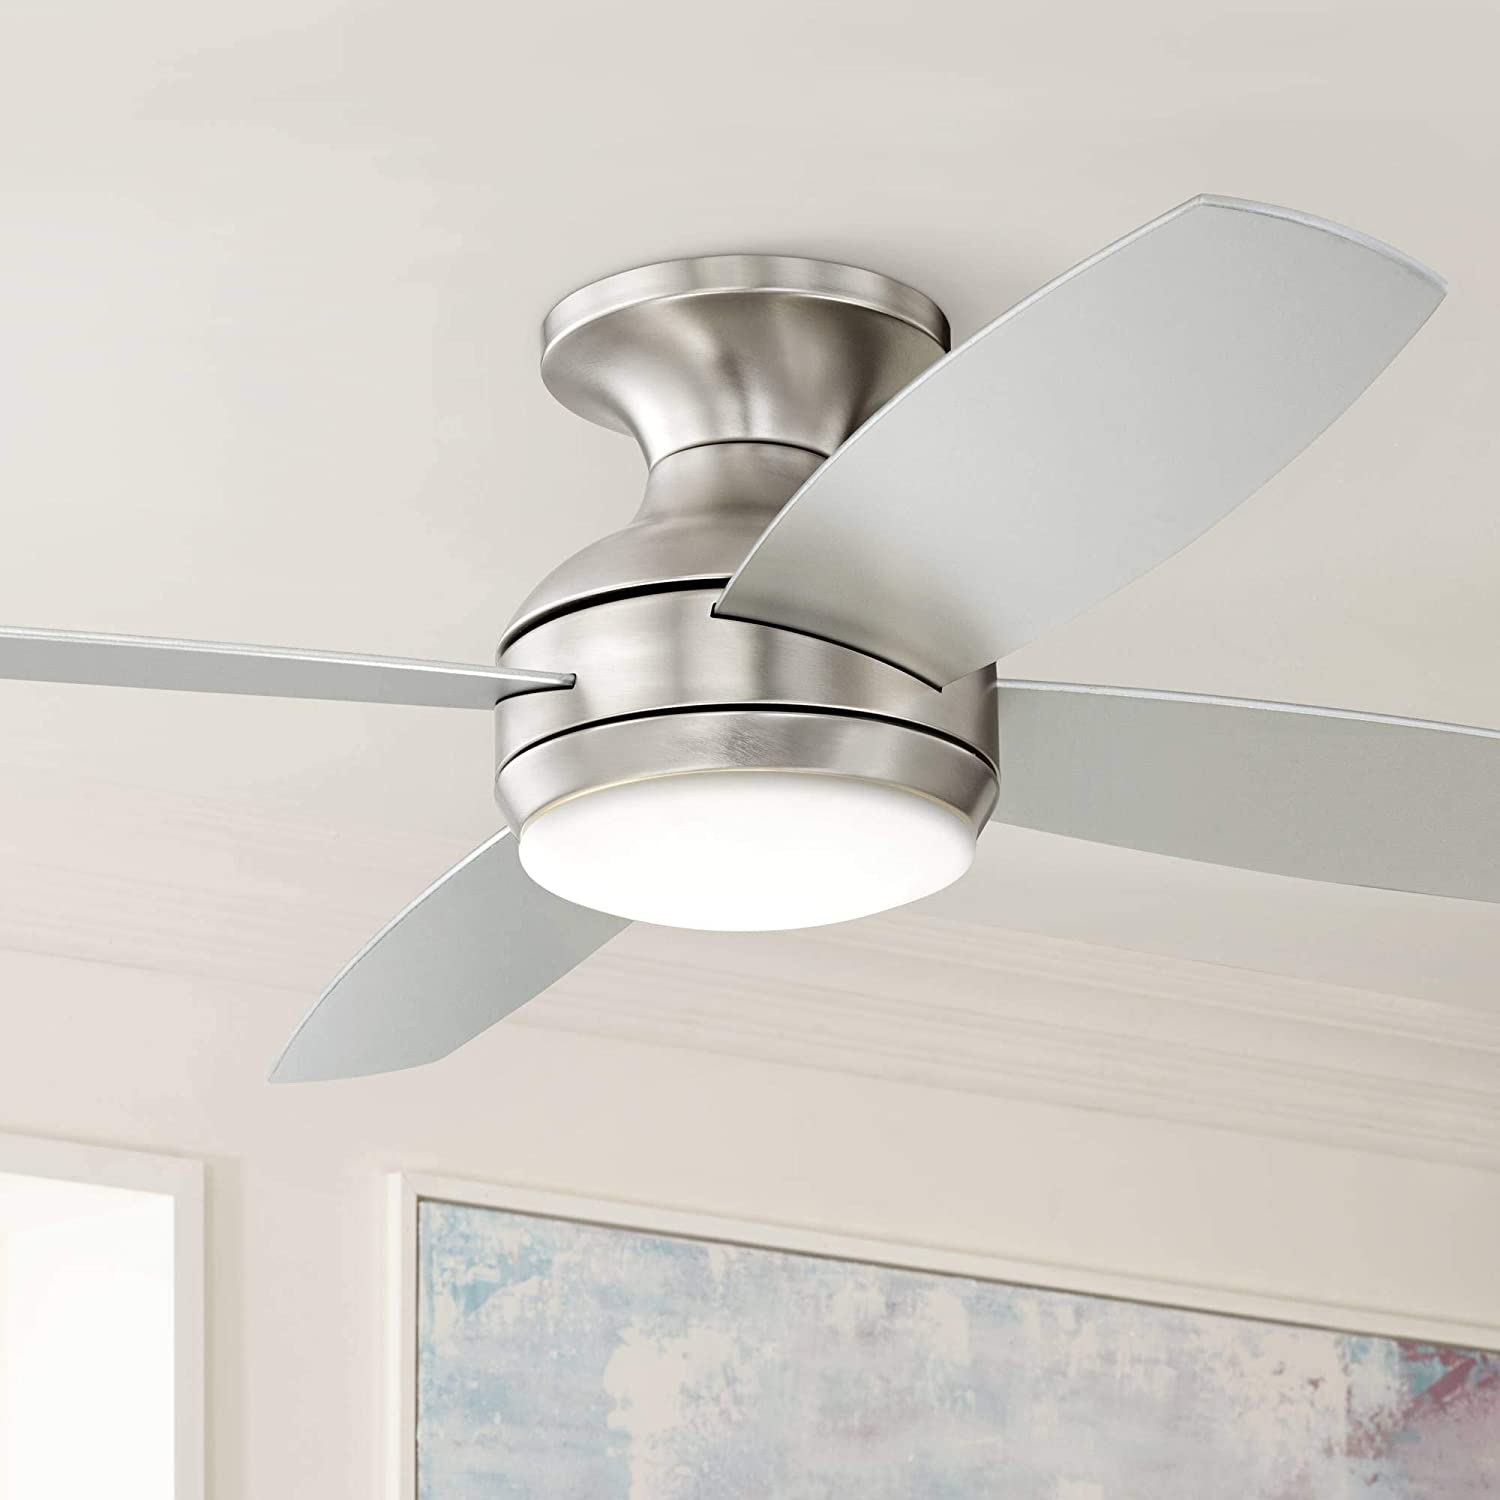 Best low profile ceiling fans with lights